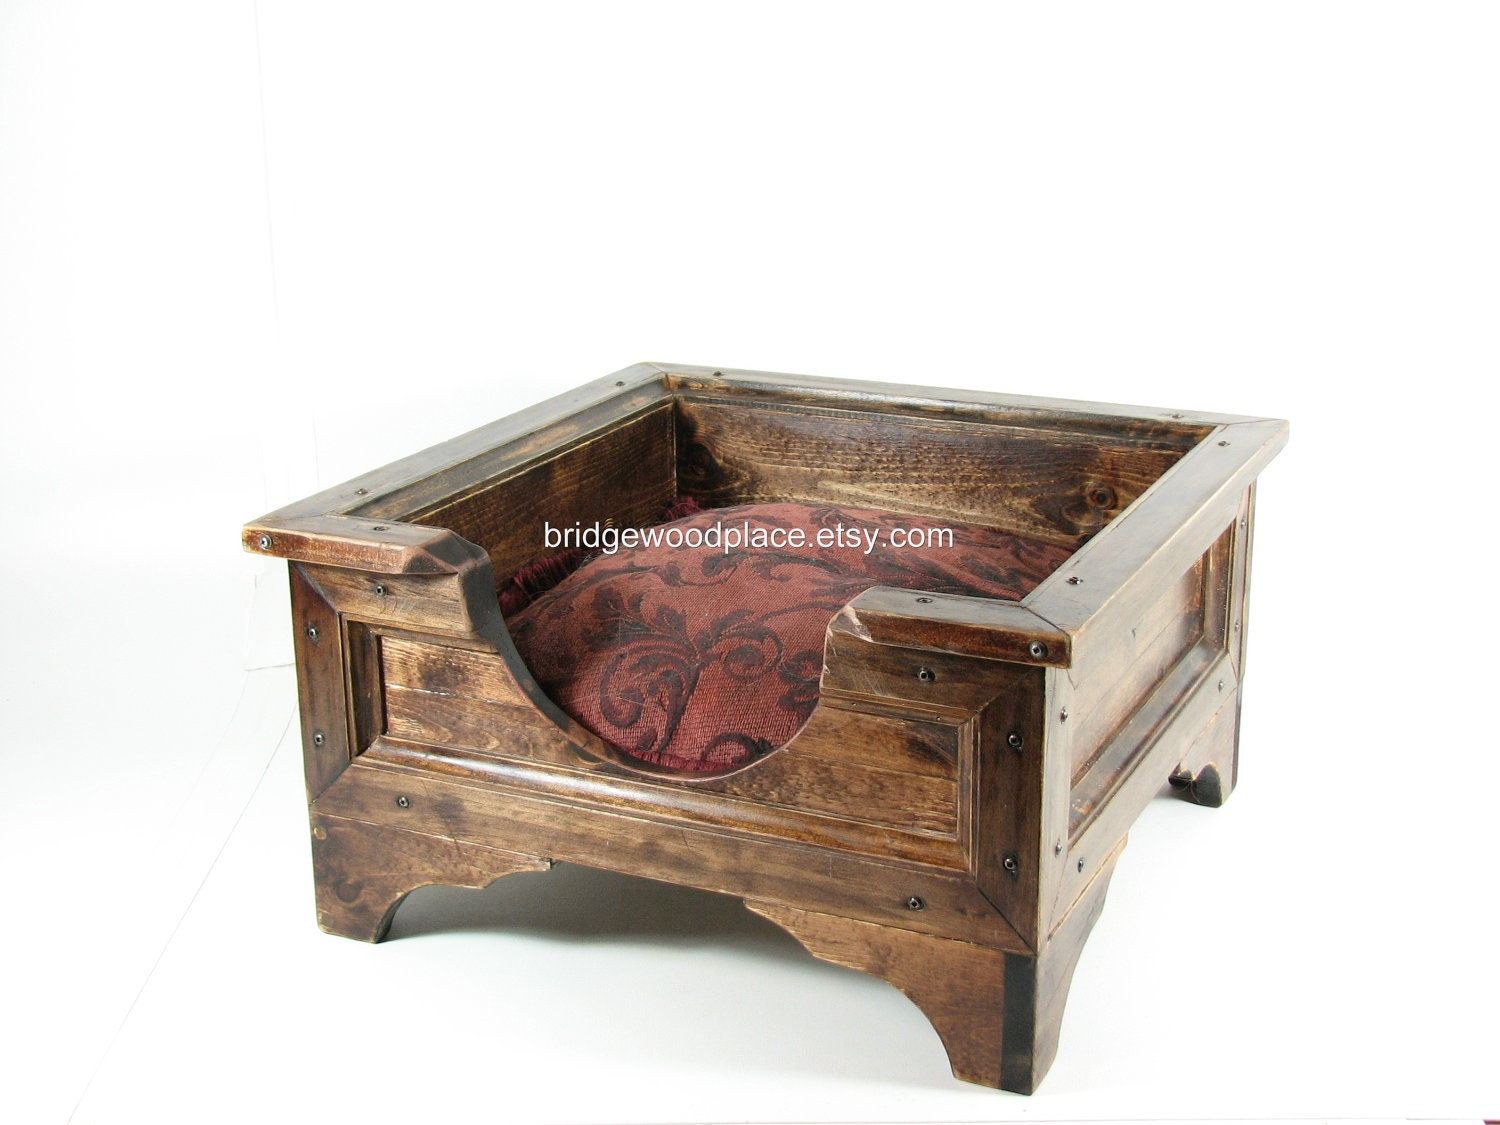 Pet bed furniture cat bed small dog bed wood crate wooden box Wooden bed furniture